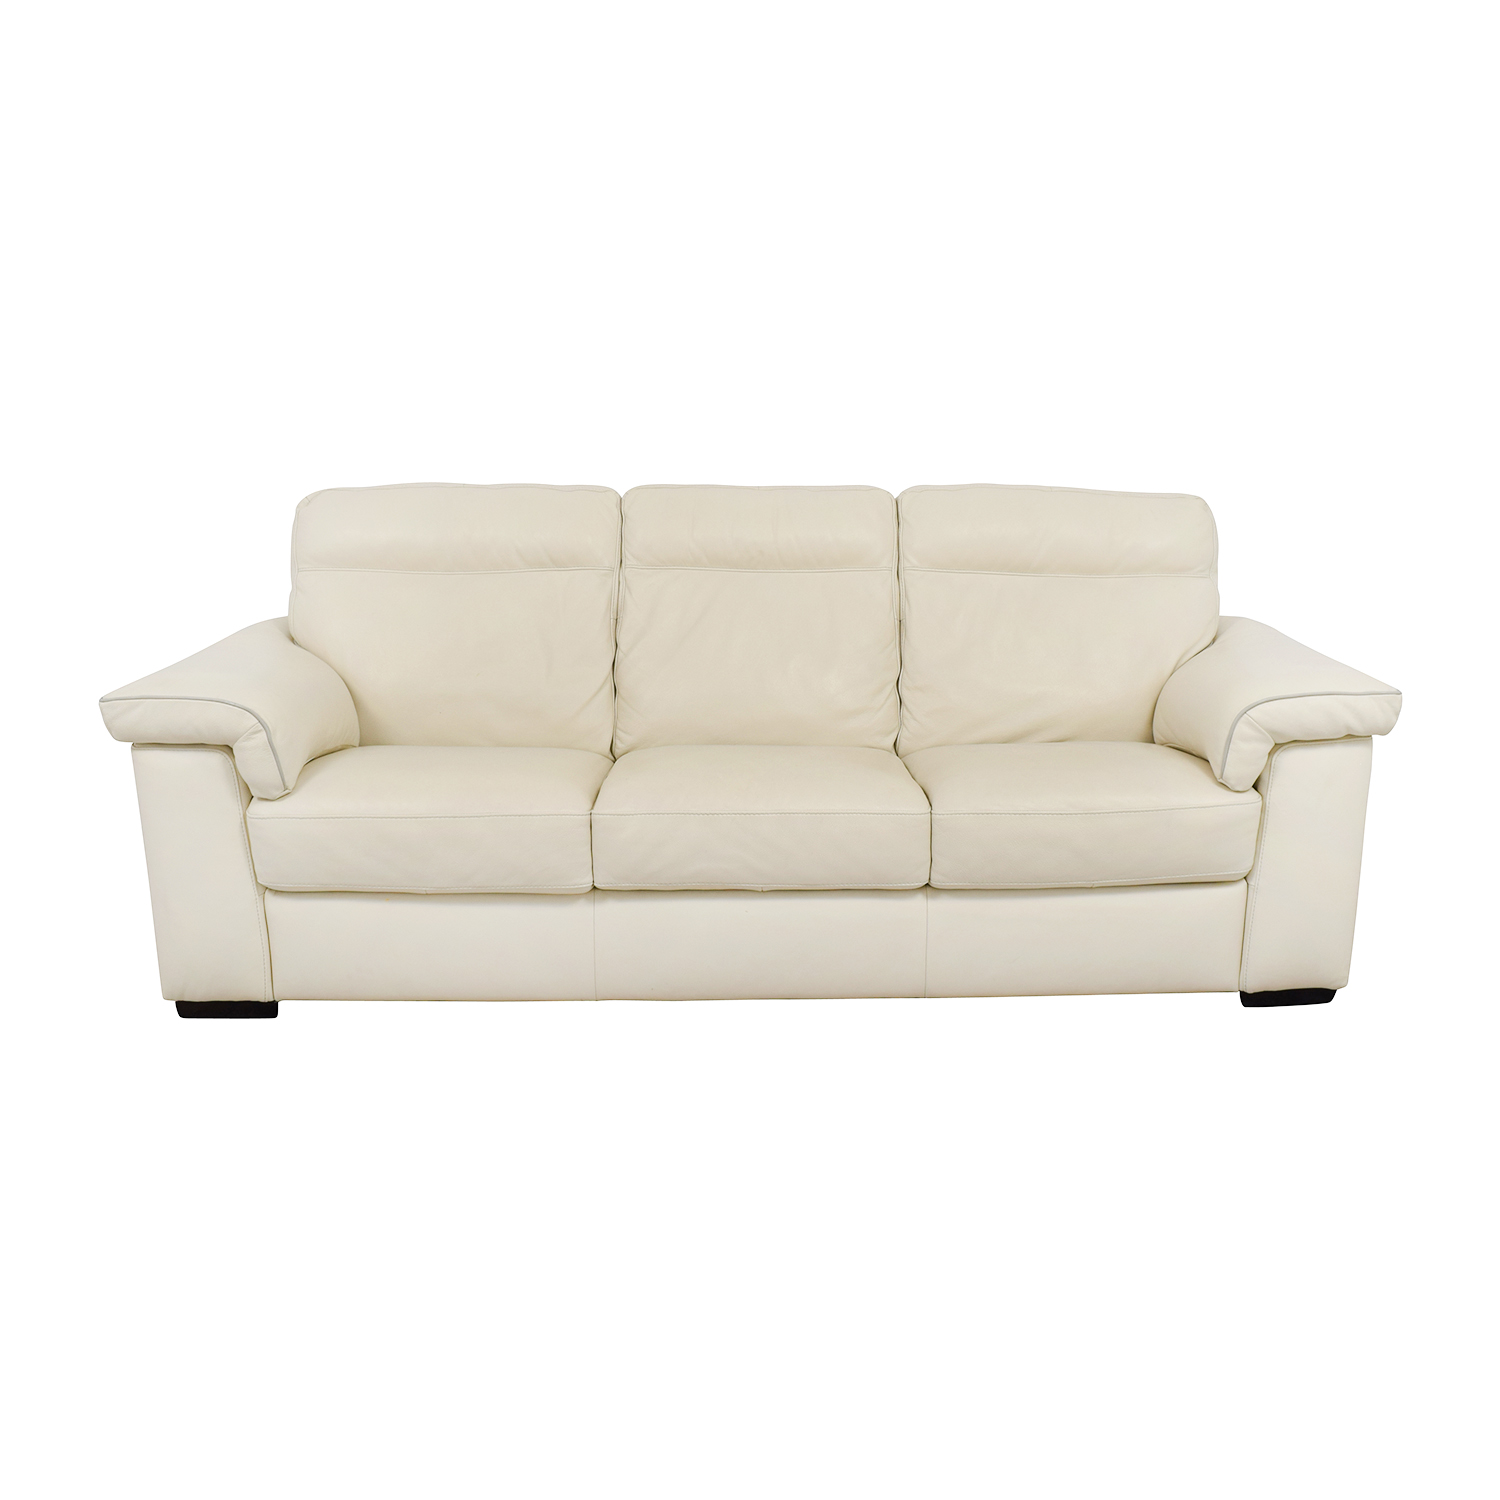 White Leather Three-Cushion Sofa price